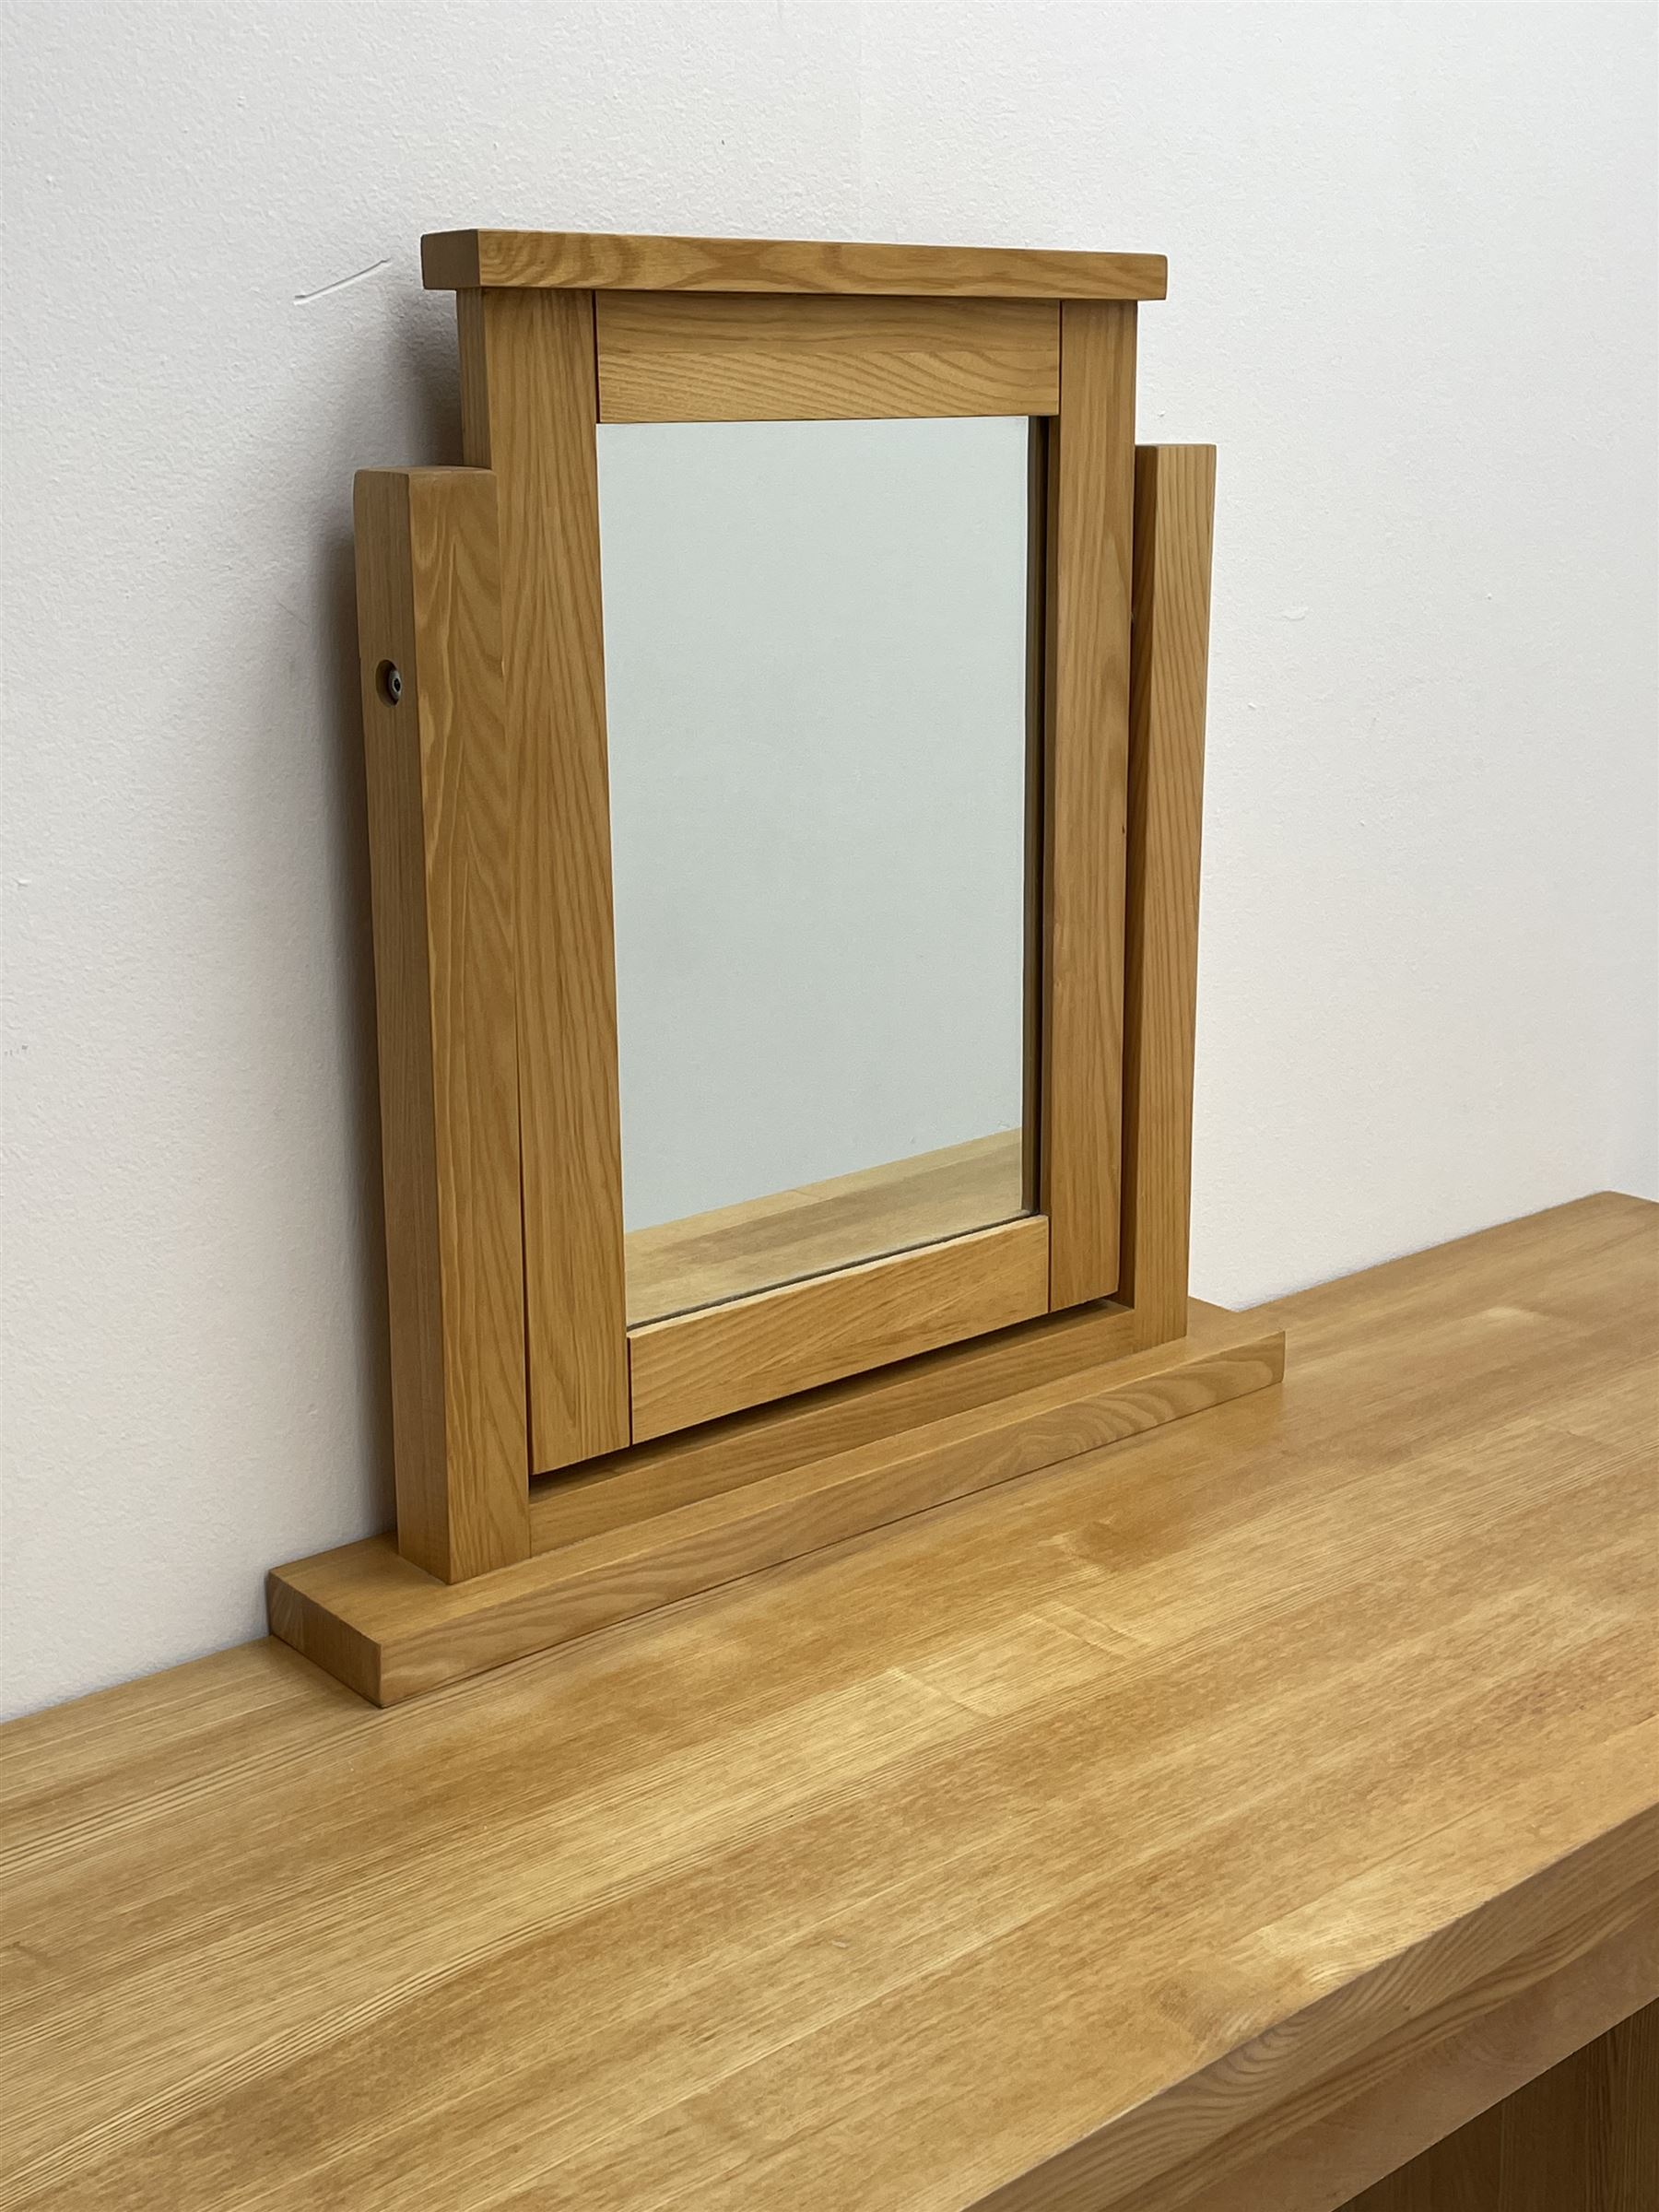 Light oak dressing table with mirror - Image 2 of 3